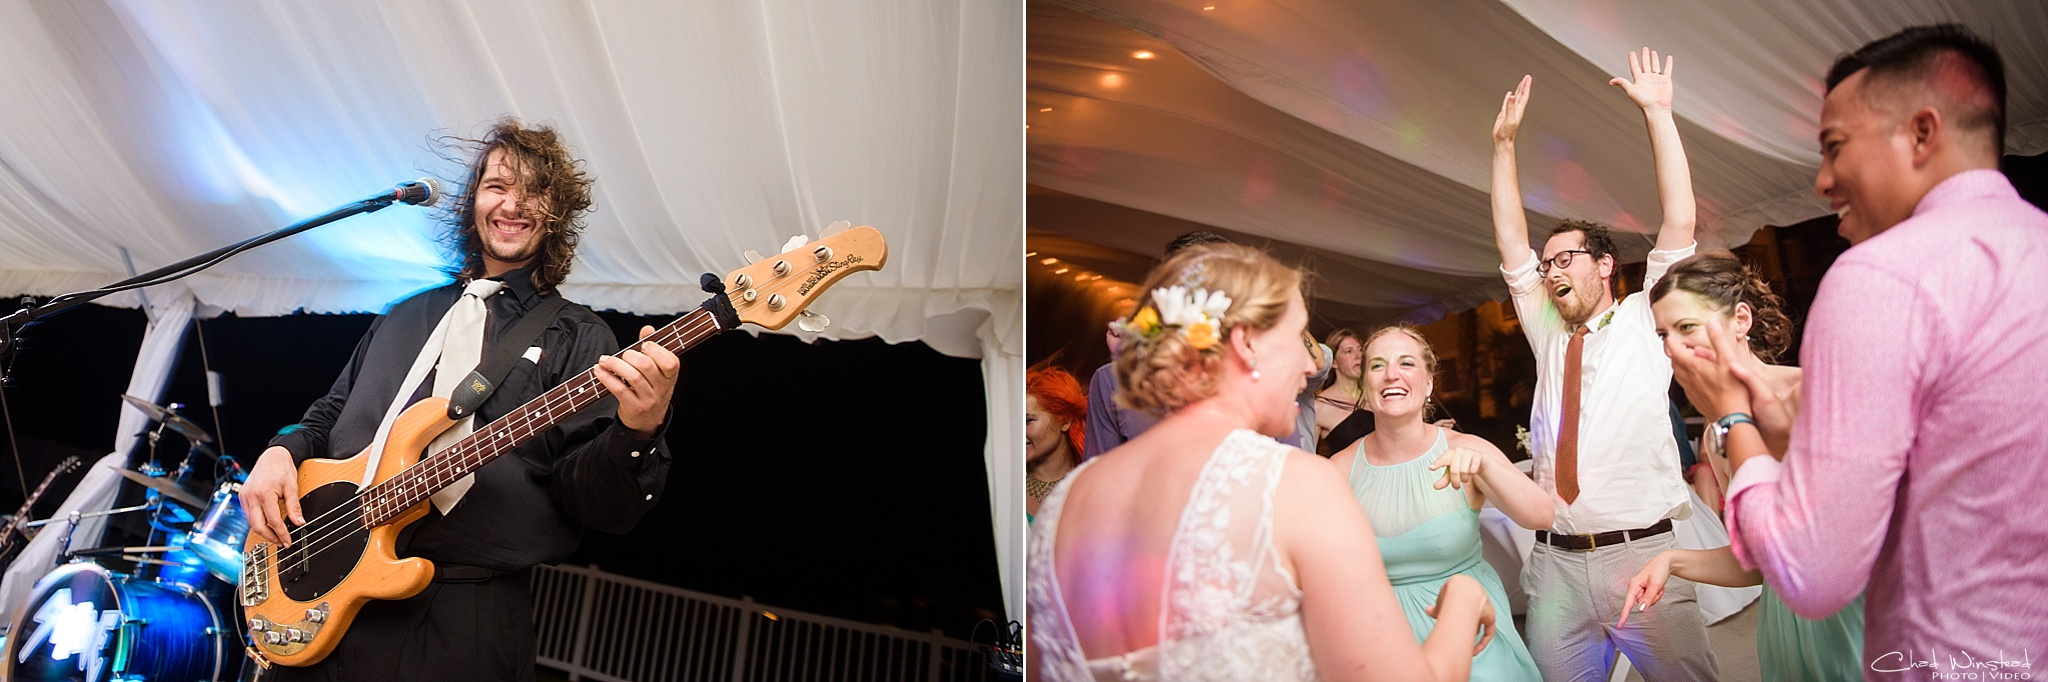 Tiffany & Justin's Wedding at the Islander Hotel and Suites in Emerald Isle, NC by Chad Winstead Photography